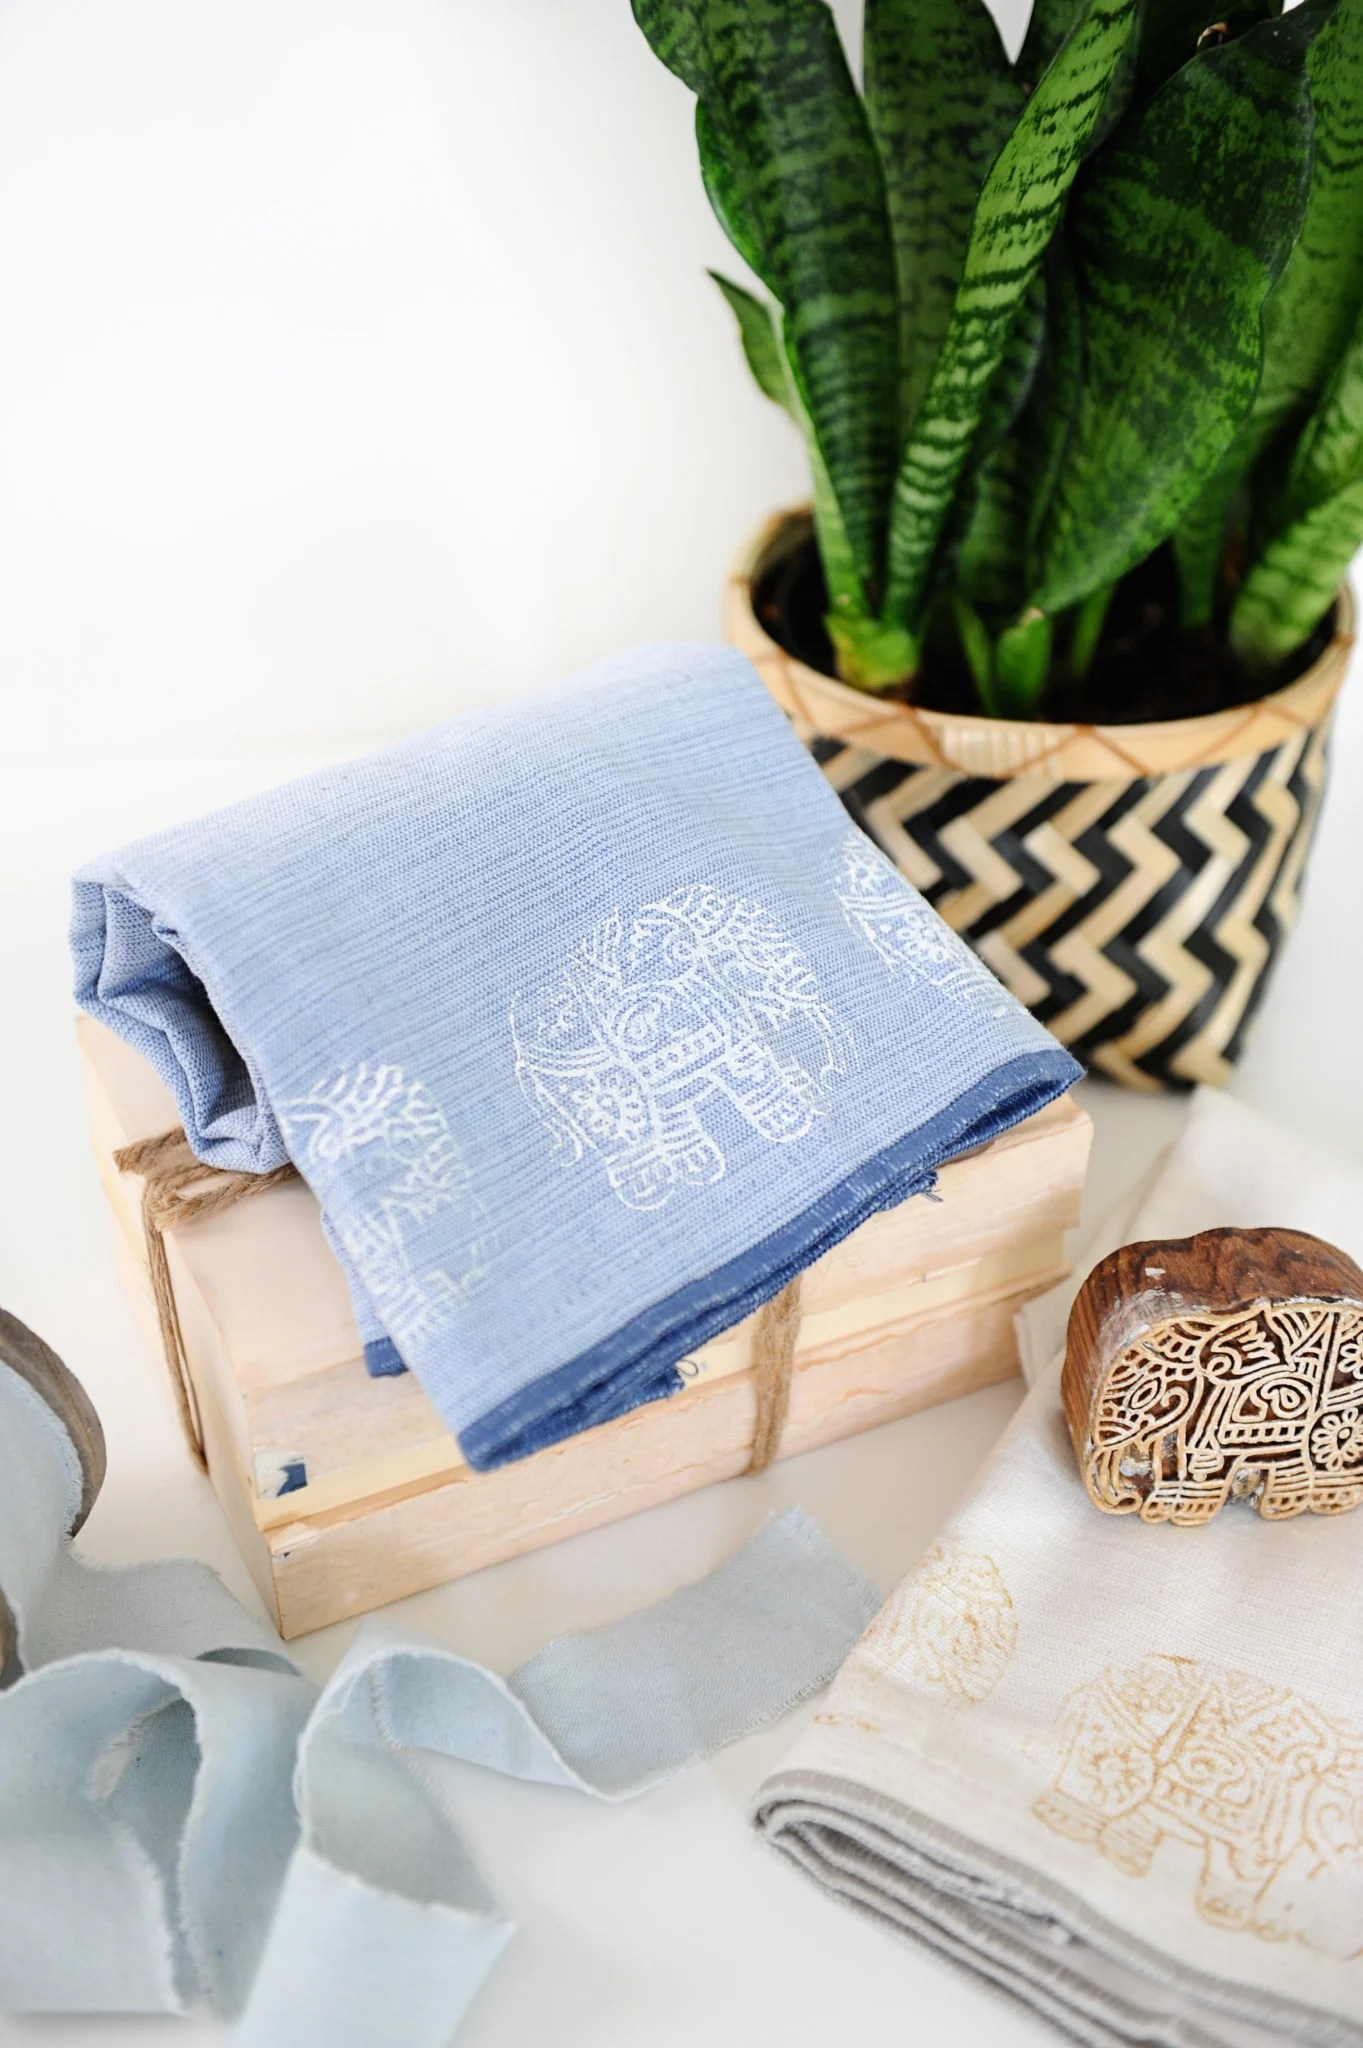 DIY Block Print Towels